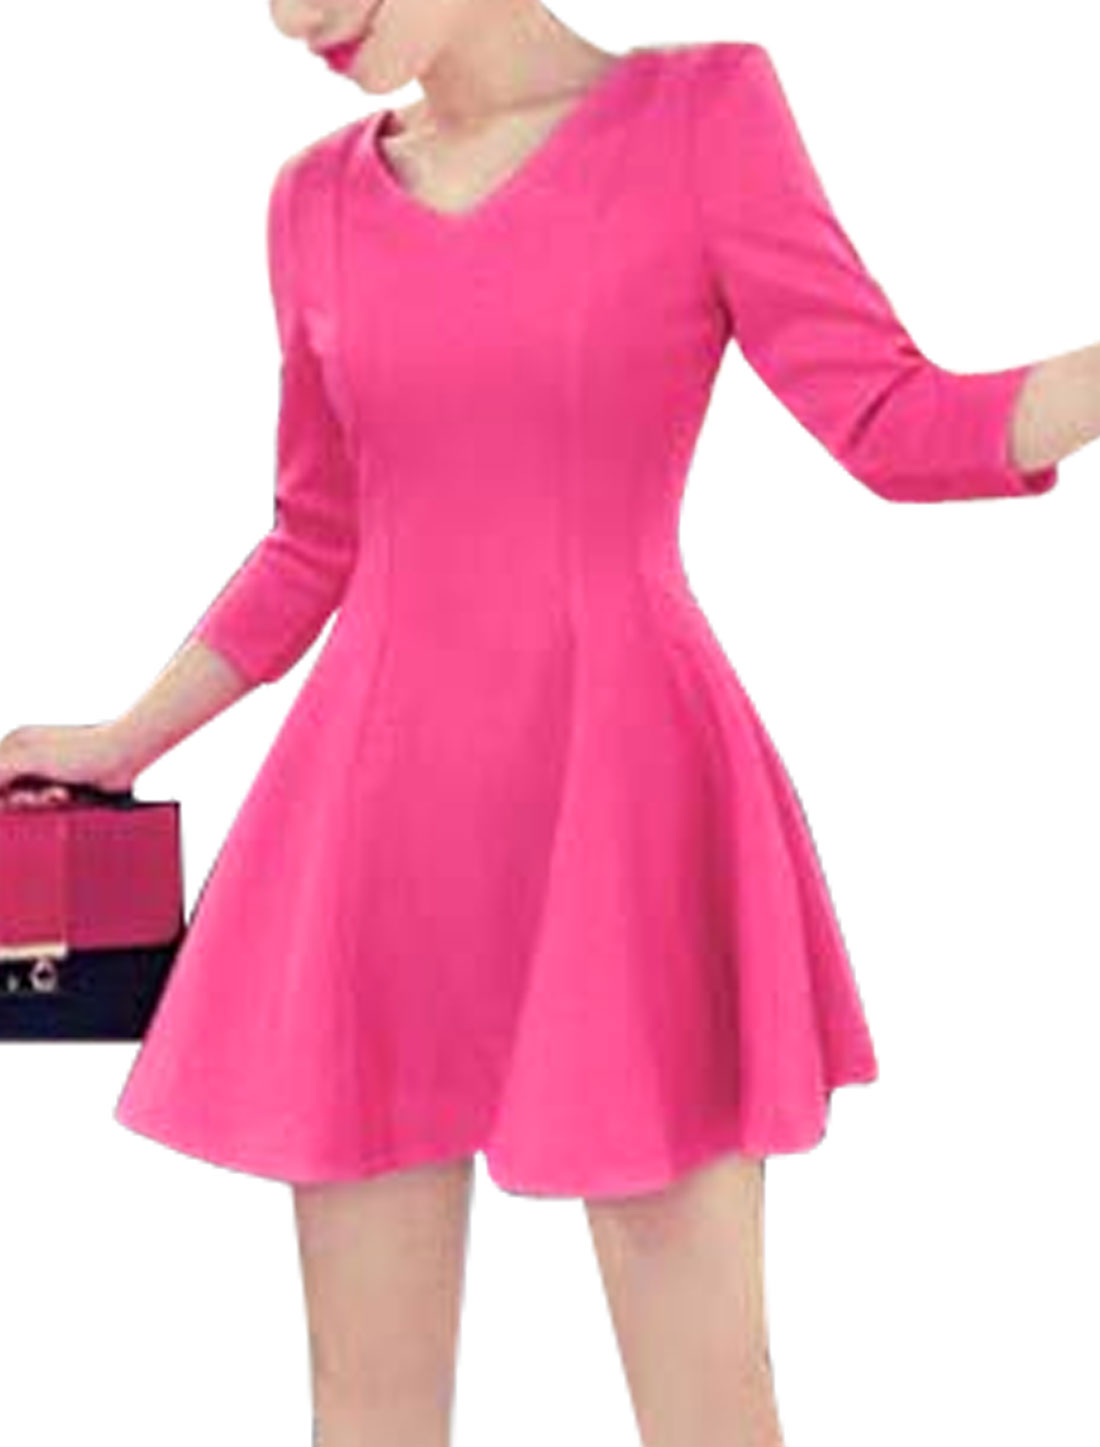 Women 3/4 Sleeves Fit and Flare Trendy Casual Dresses Fuchsia S